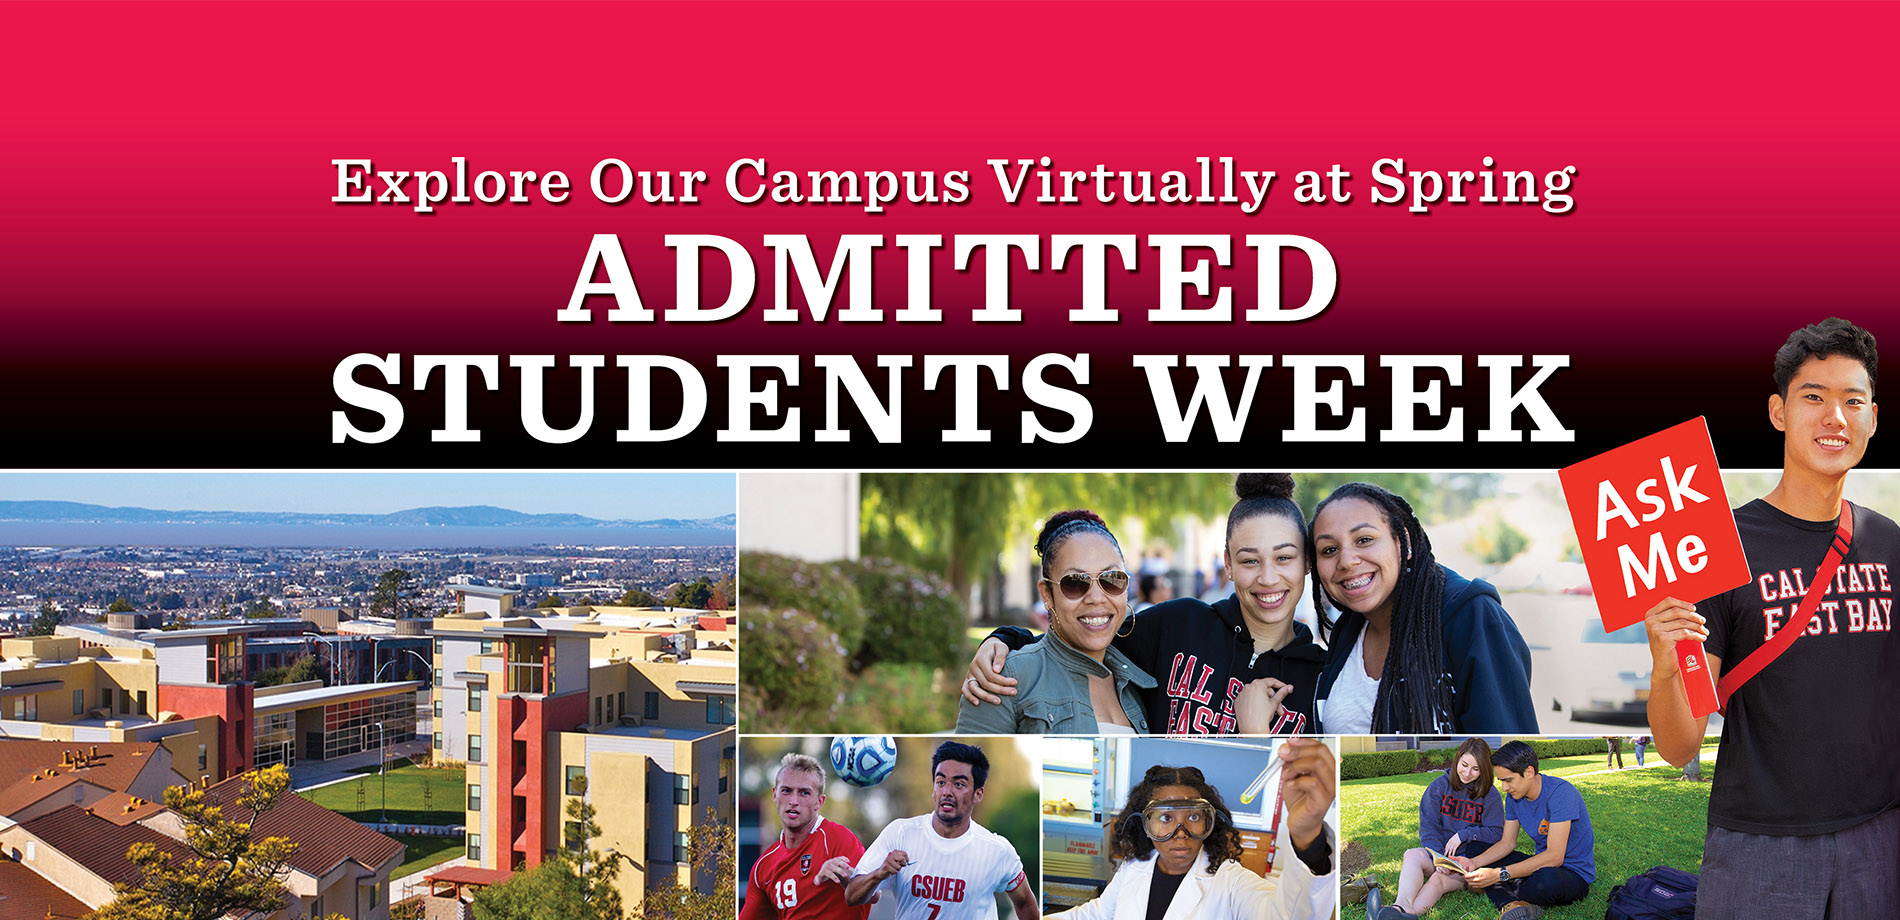 Spring Admitted Students week banner